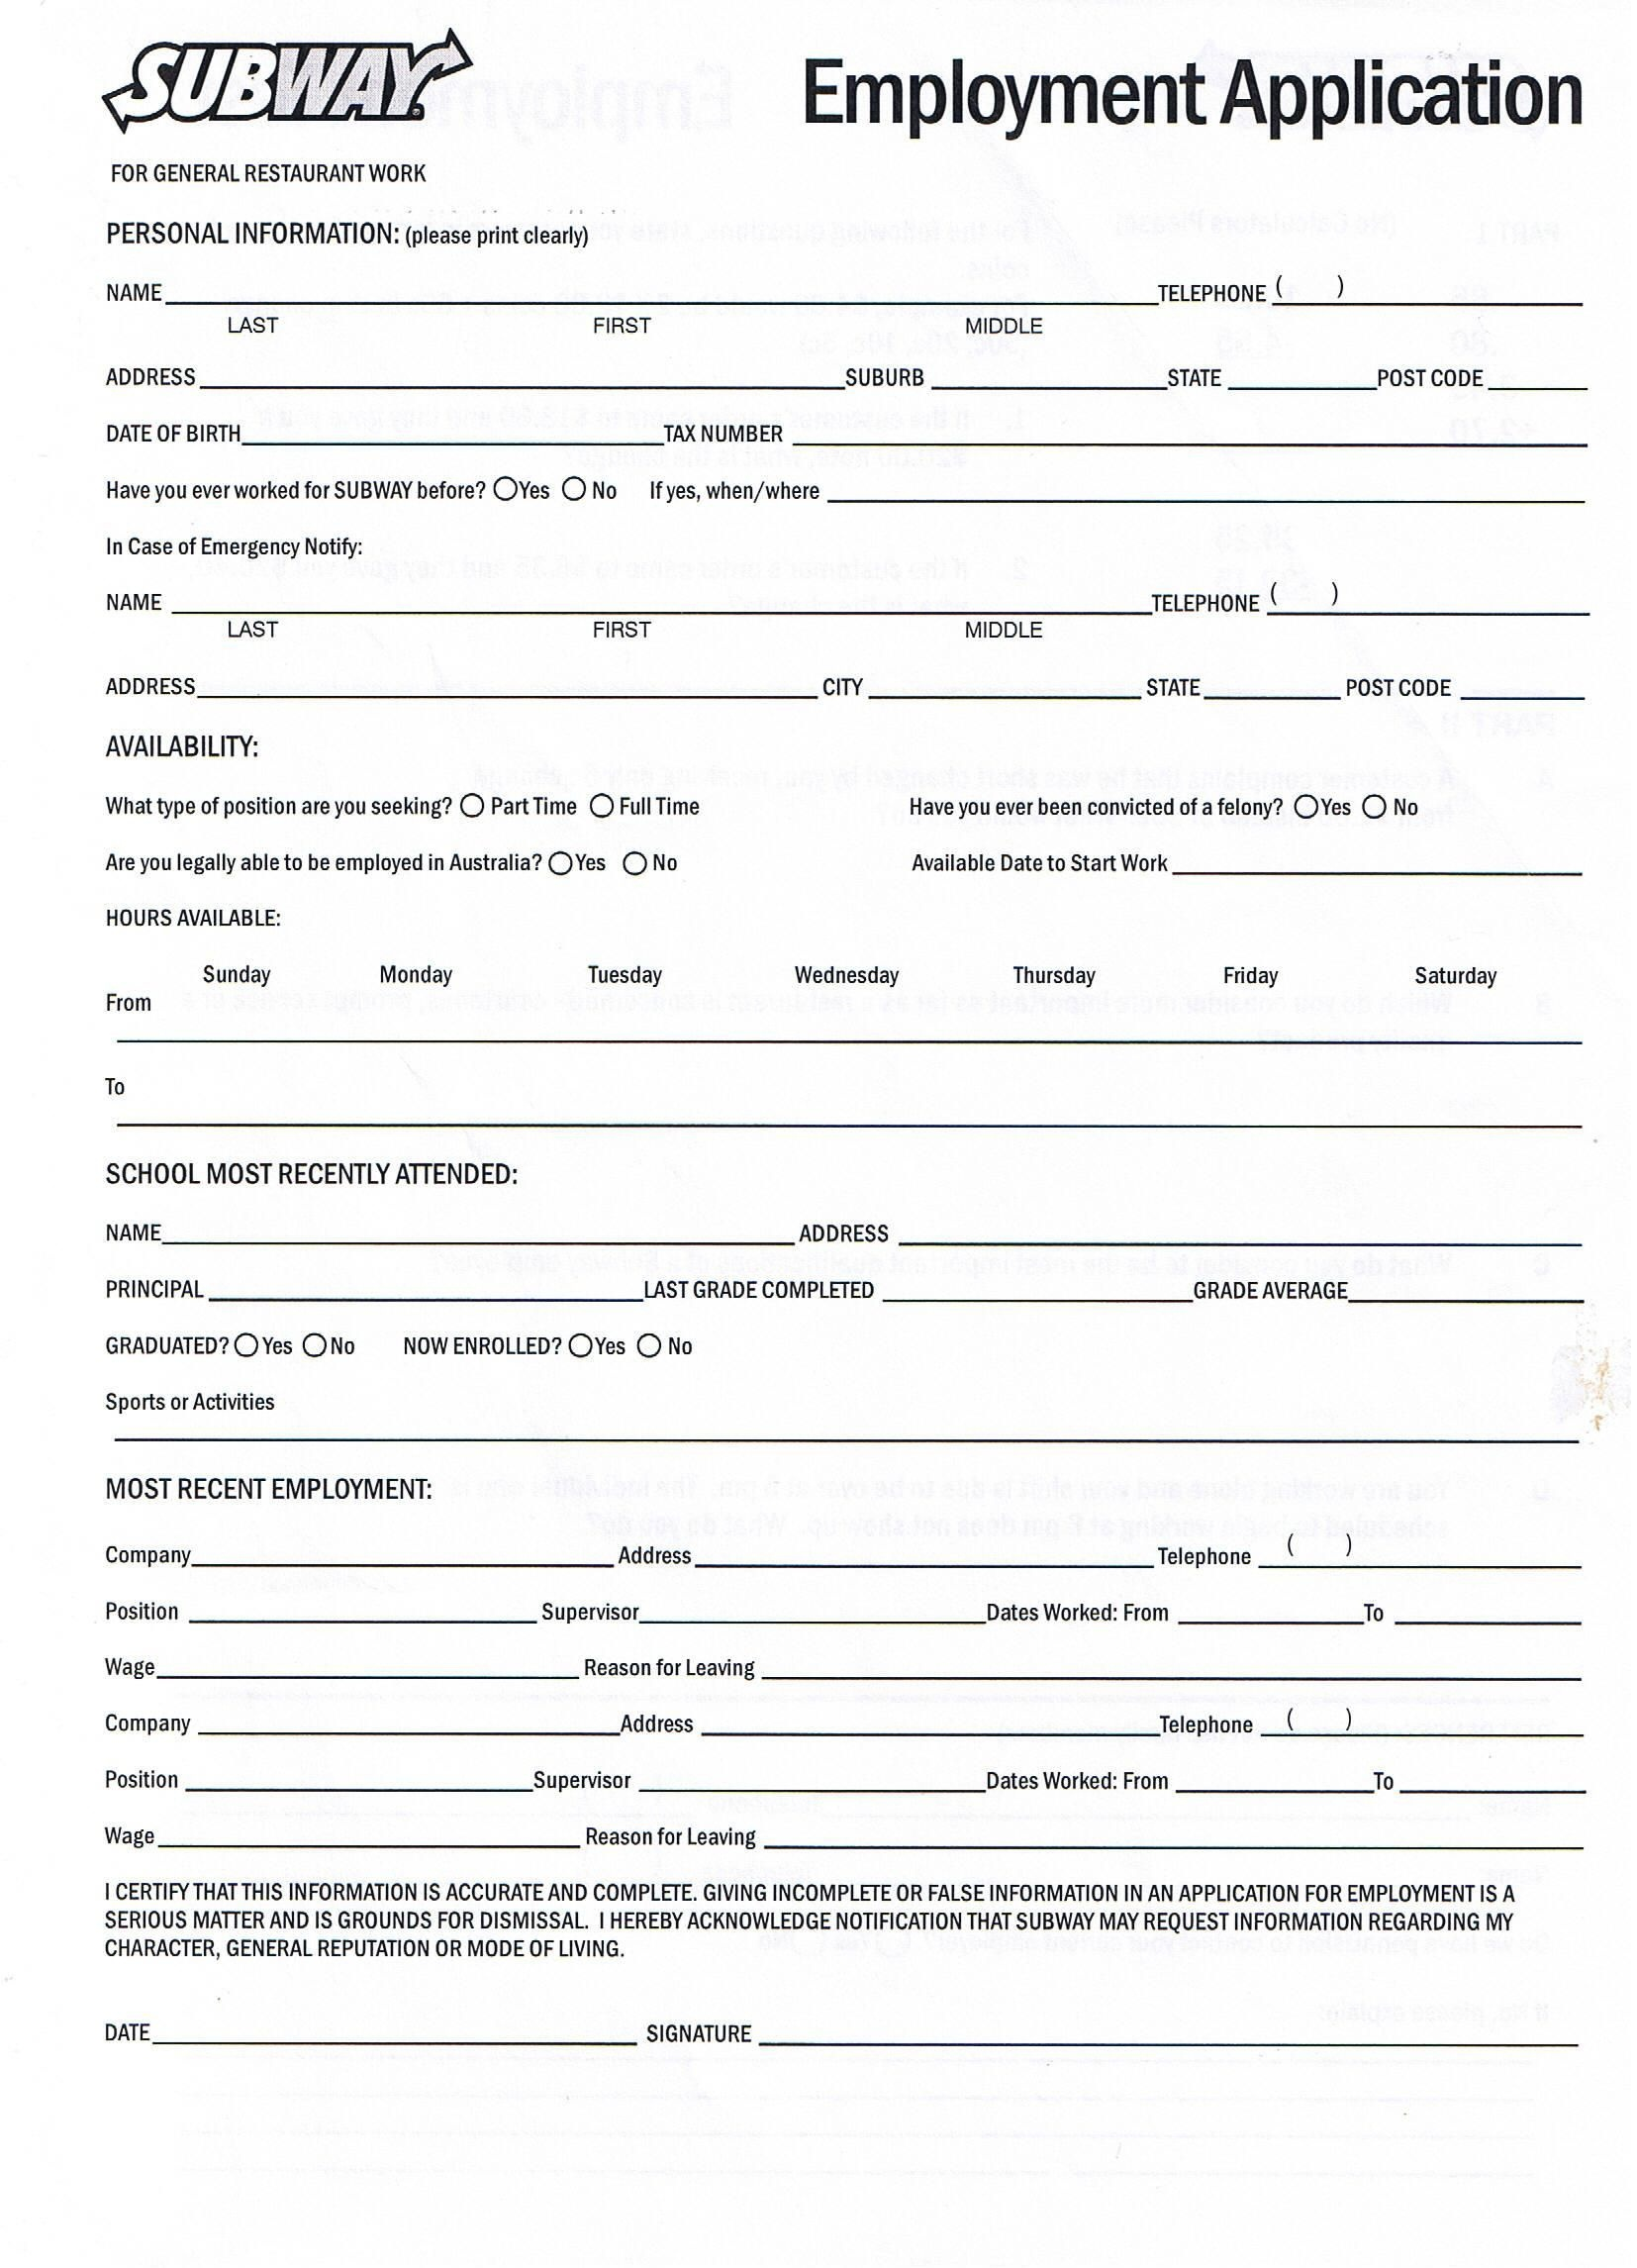 Printable Job Application Forms Online Forms, Download And Print - Free Online Printable Applications